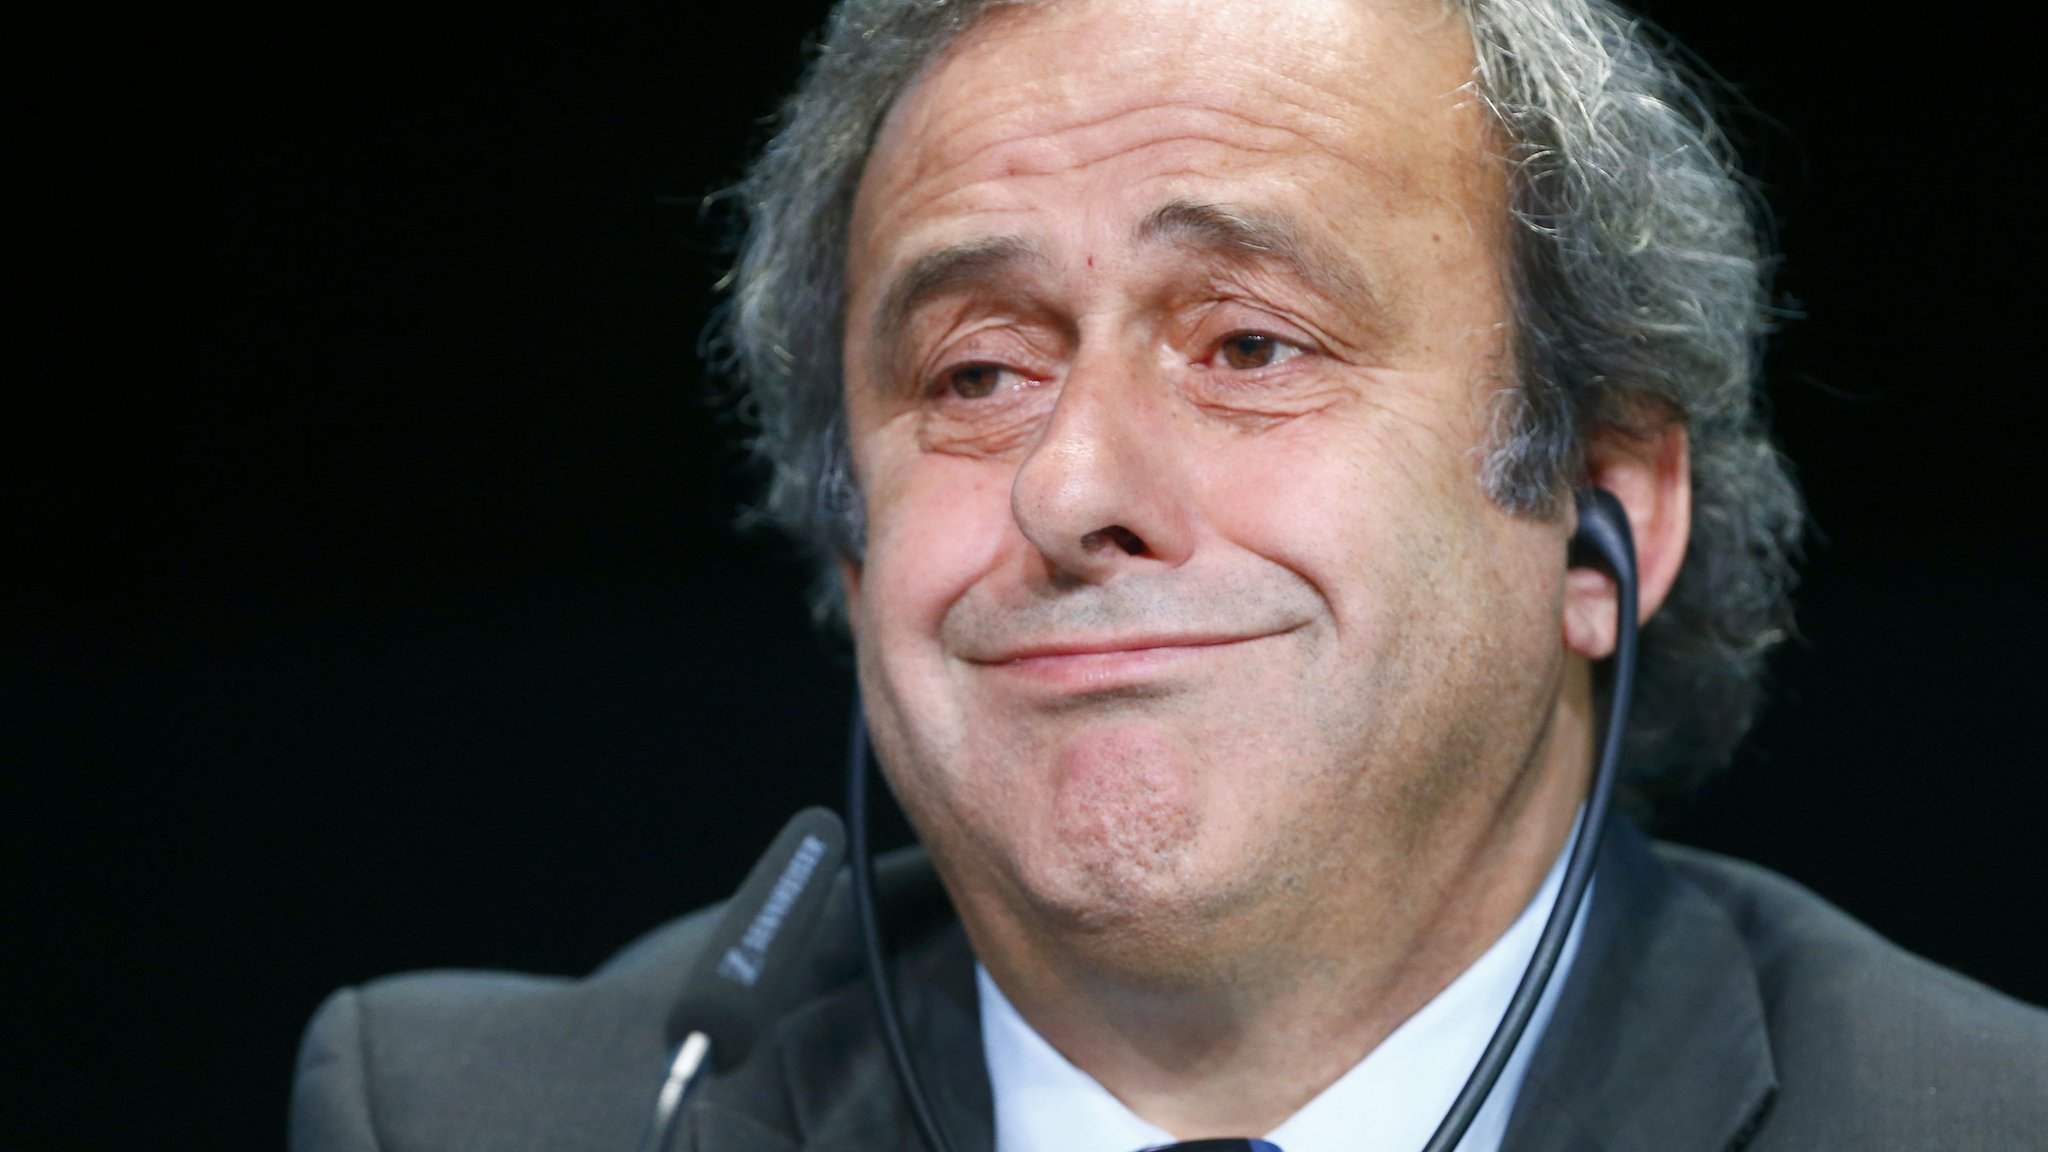 Michel Platini: No criminal charges, claims ex-Uefa president